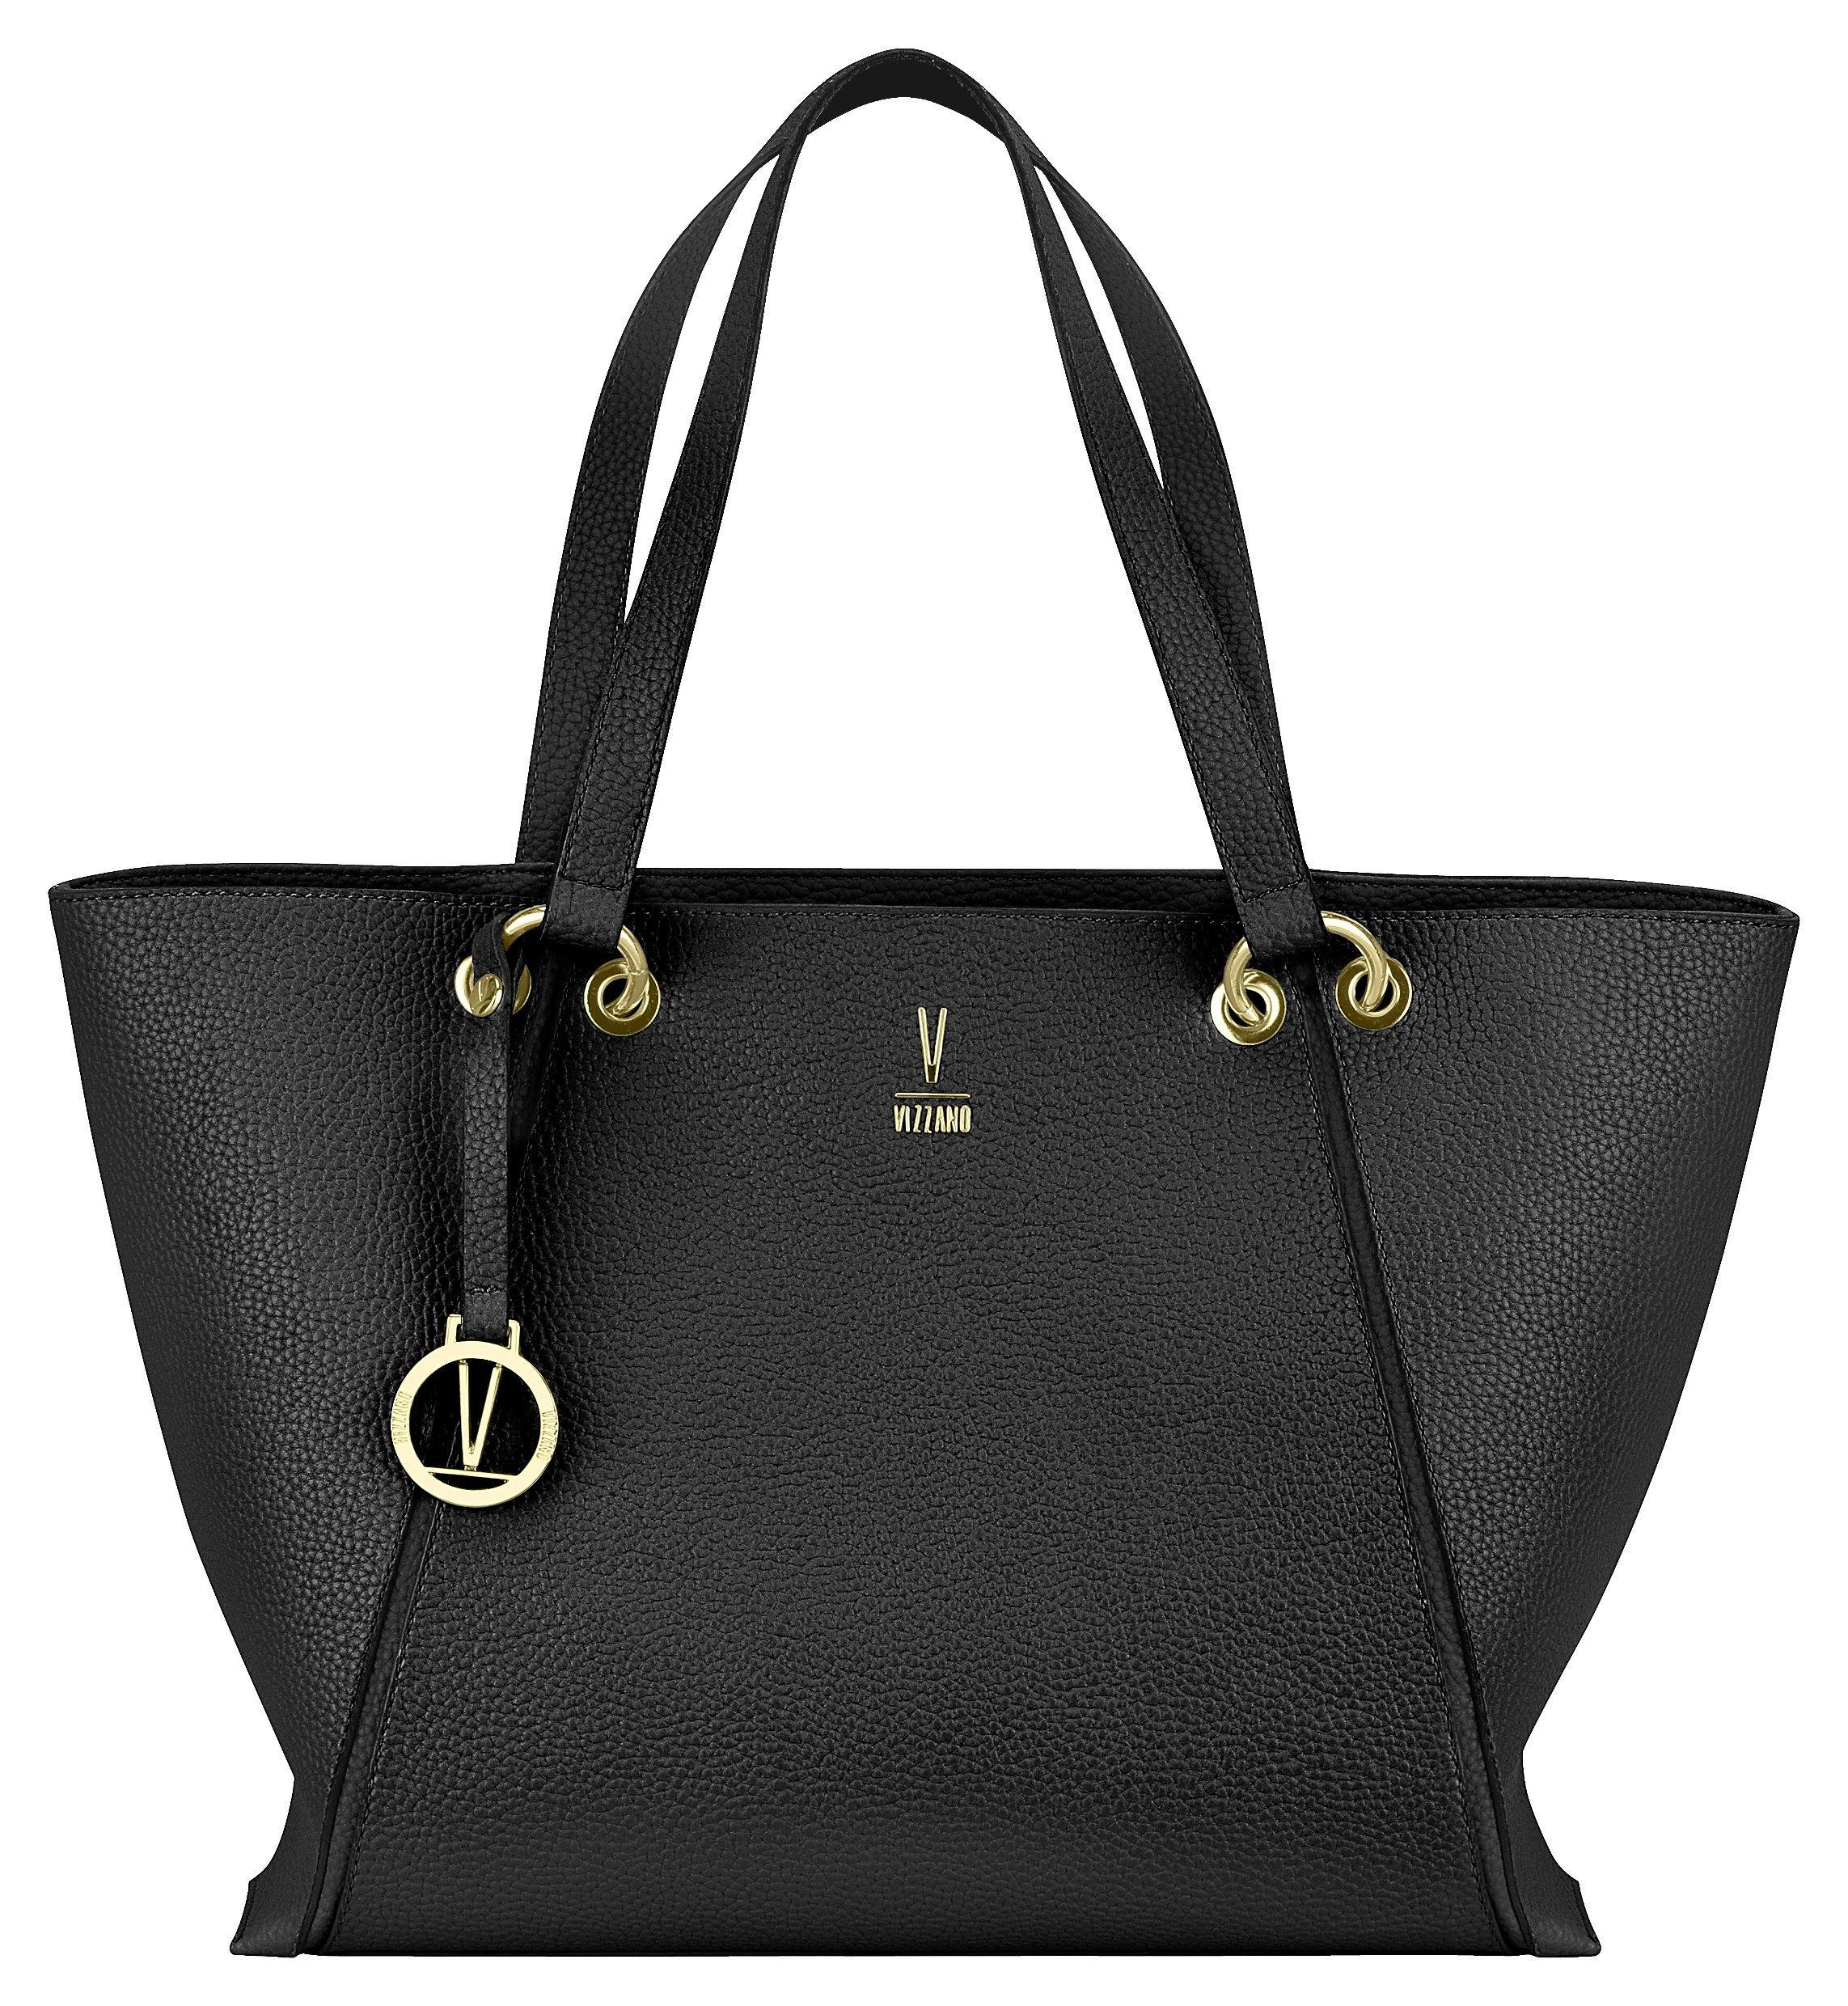 Vizzano 10004-1 Shoulder Bag in Black